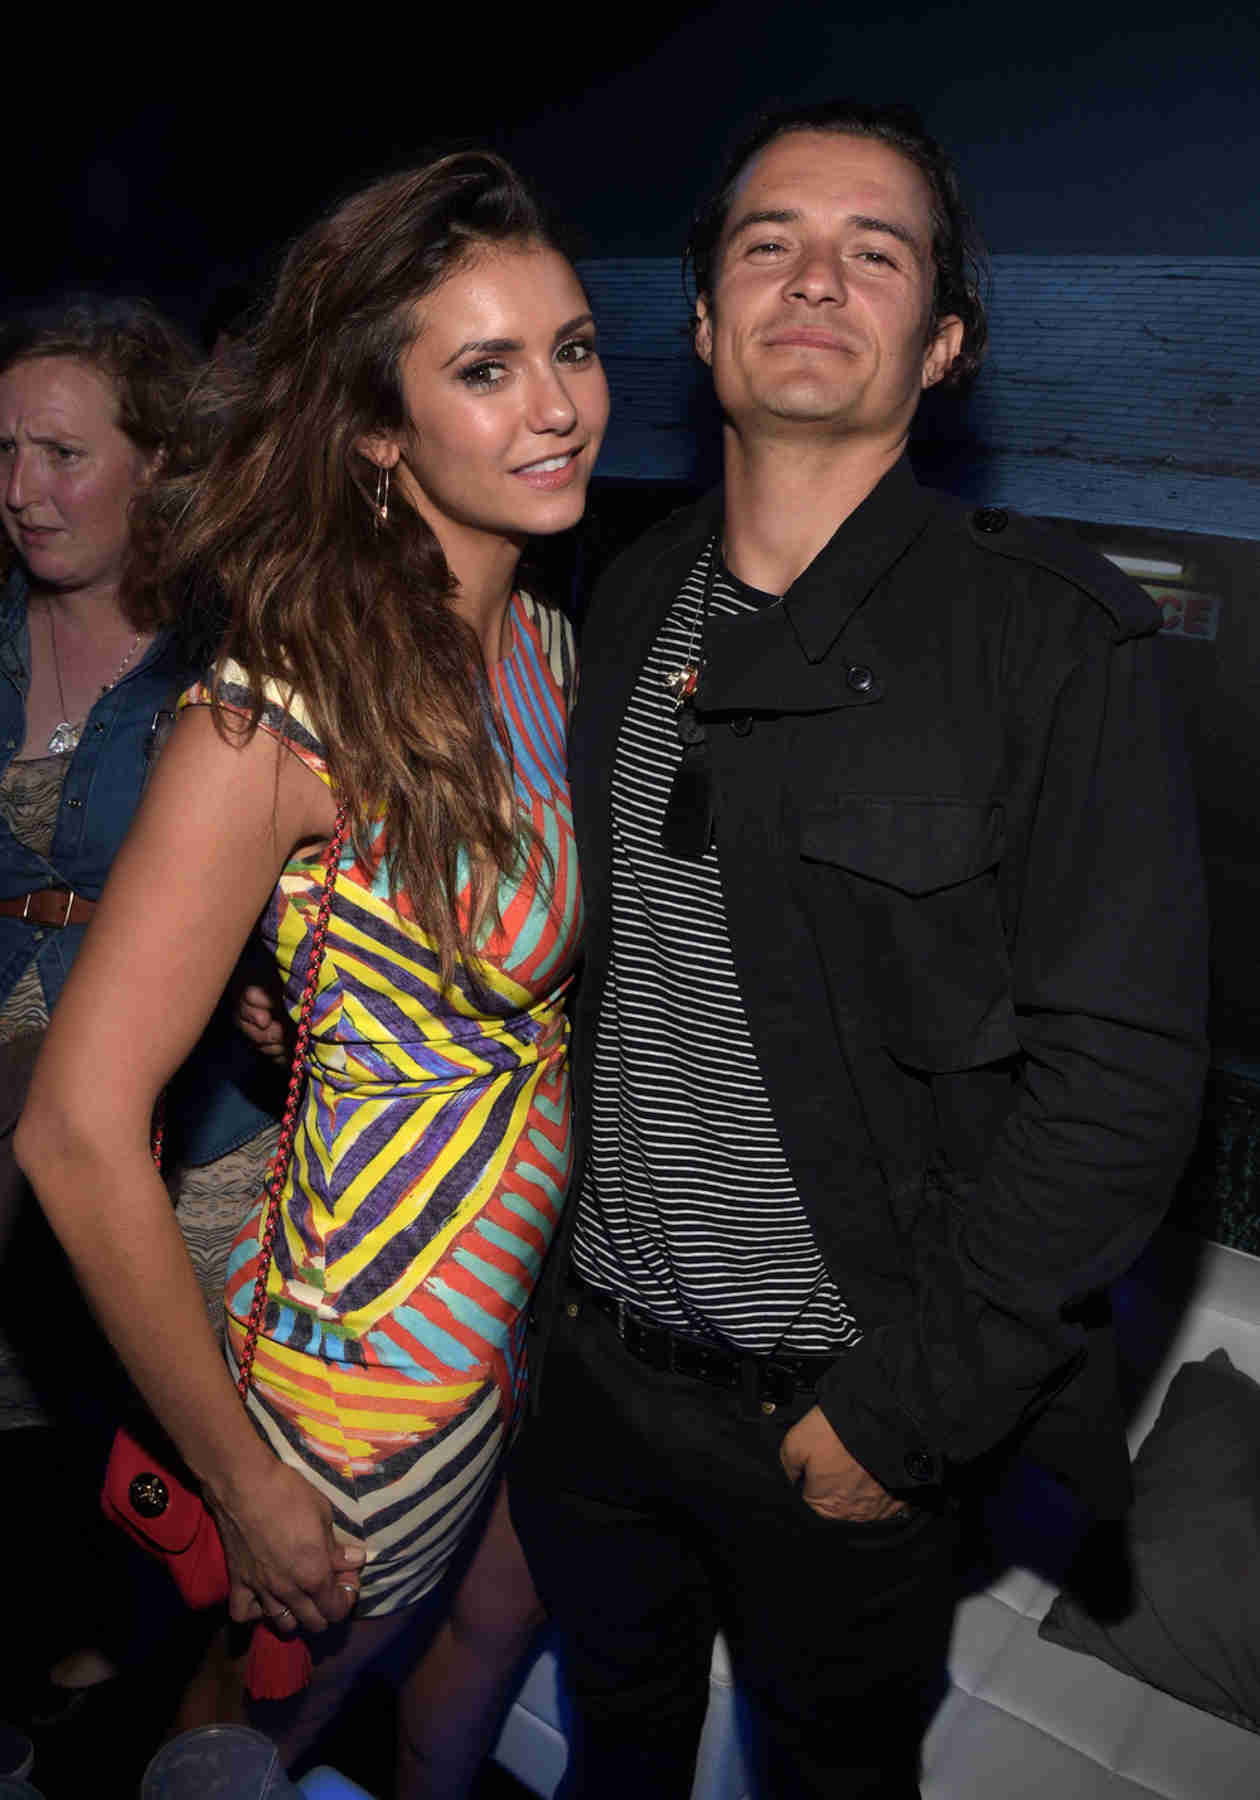 Nina Dobrev Hangs Out With Orlando Bloom at Comic-Con (PHOTO)